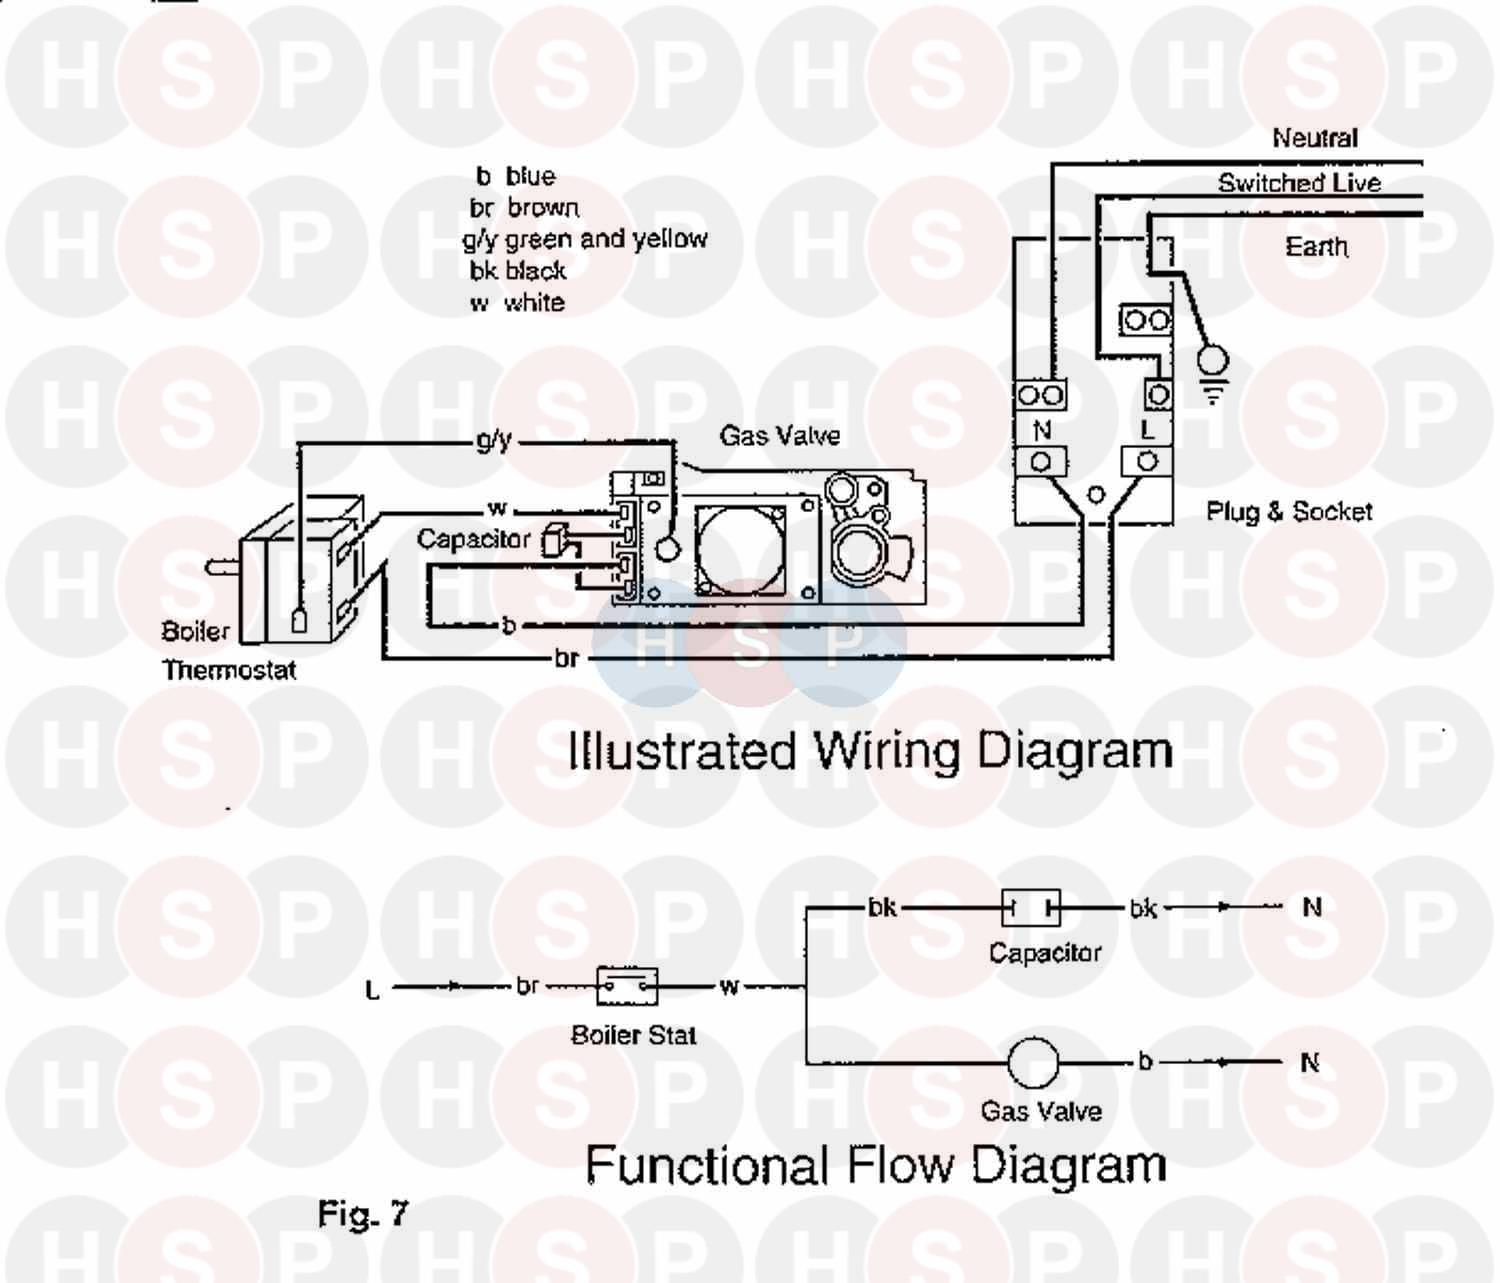 baxi bermuda inset 50  4 asd appliance diagram  wiring diagram